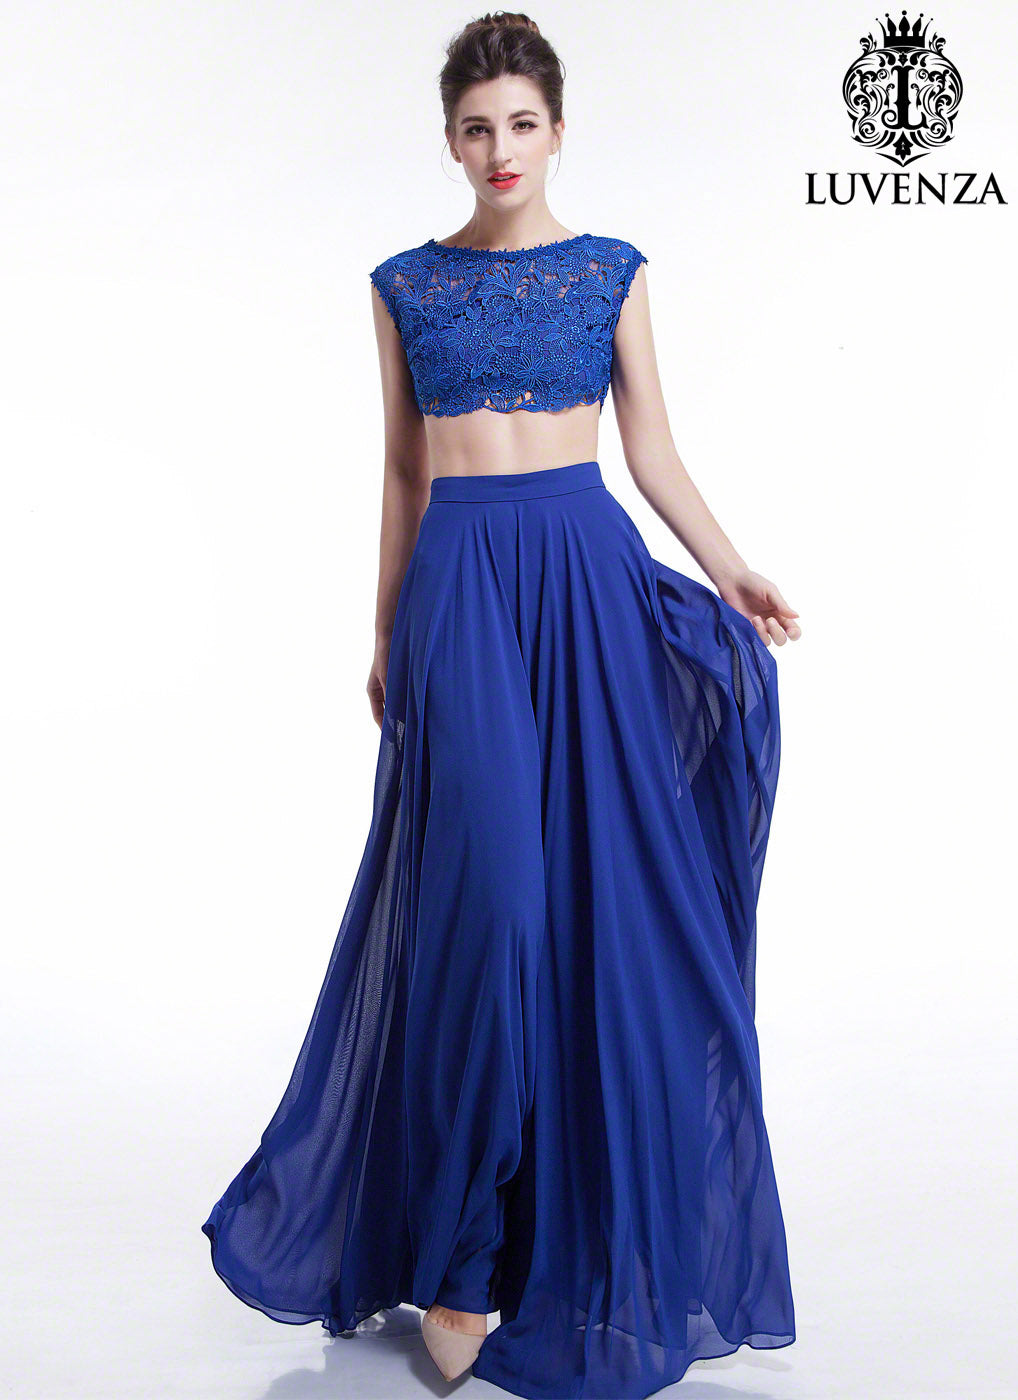 Blue Lace and Chiffon Separates Evening Gown / Two Piece Cap Sleeves ...